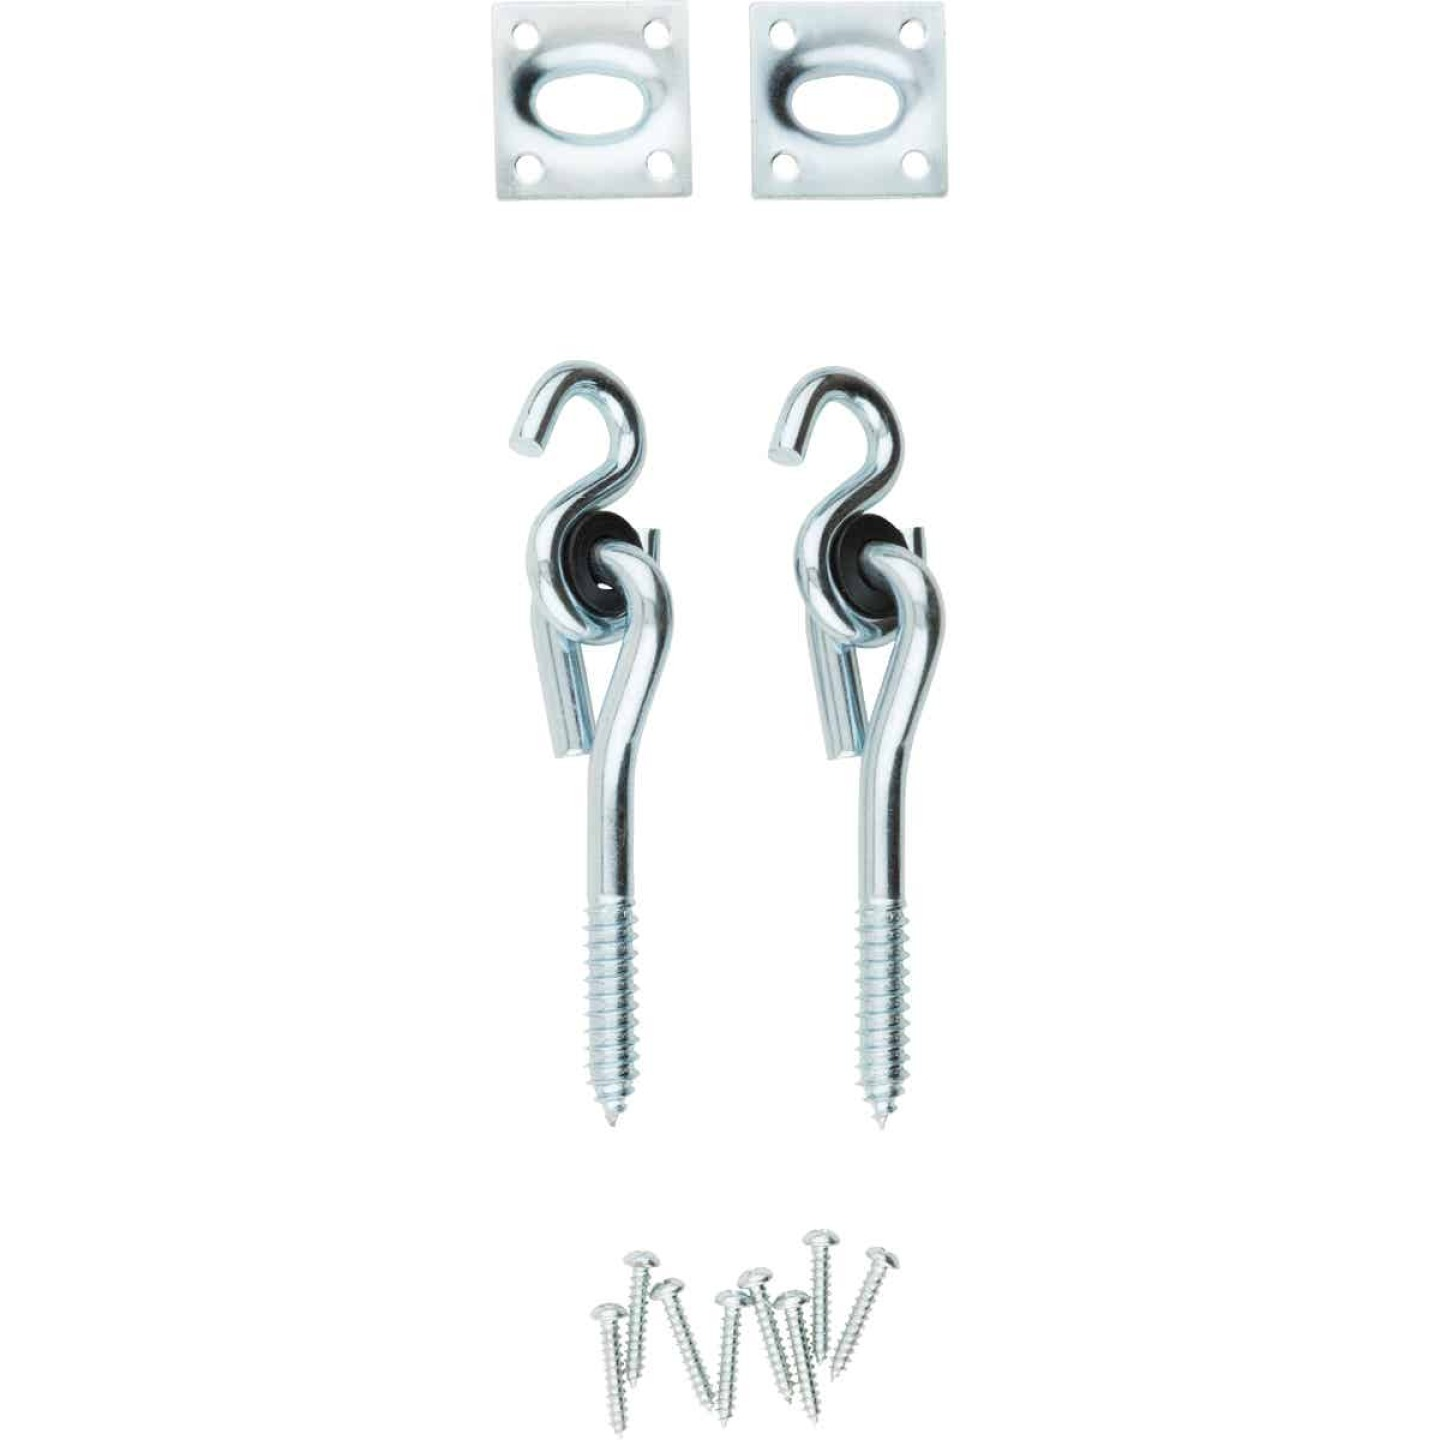 National Zinc Plated with WeatherGuard Steel Lag Screw Swing Hook Kit (2-Pack) Image 1